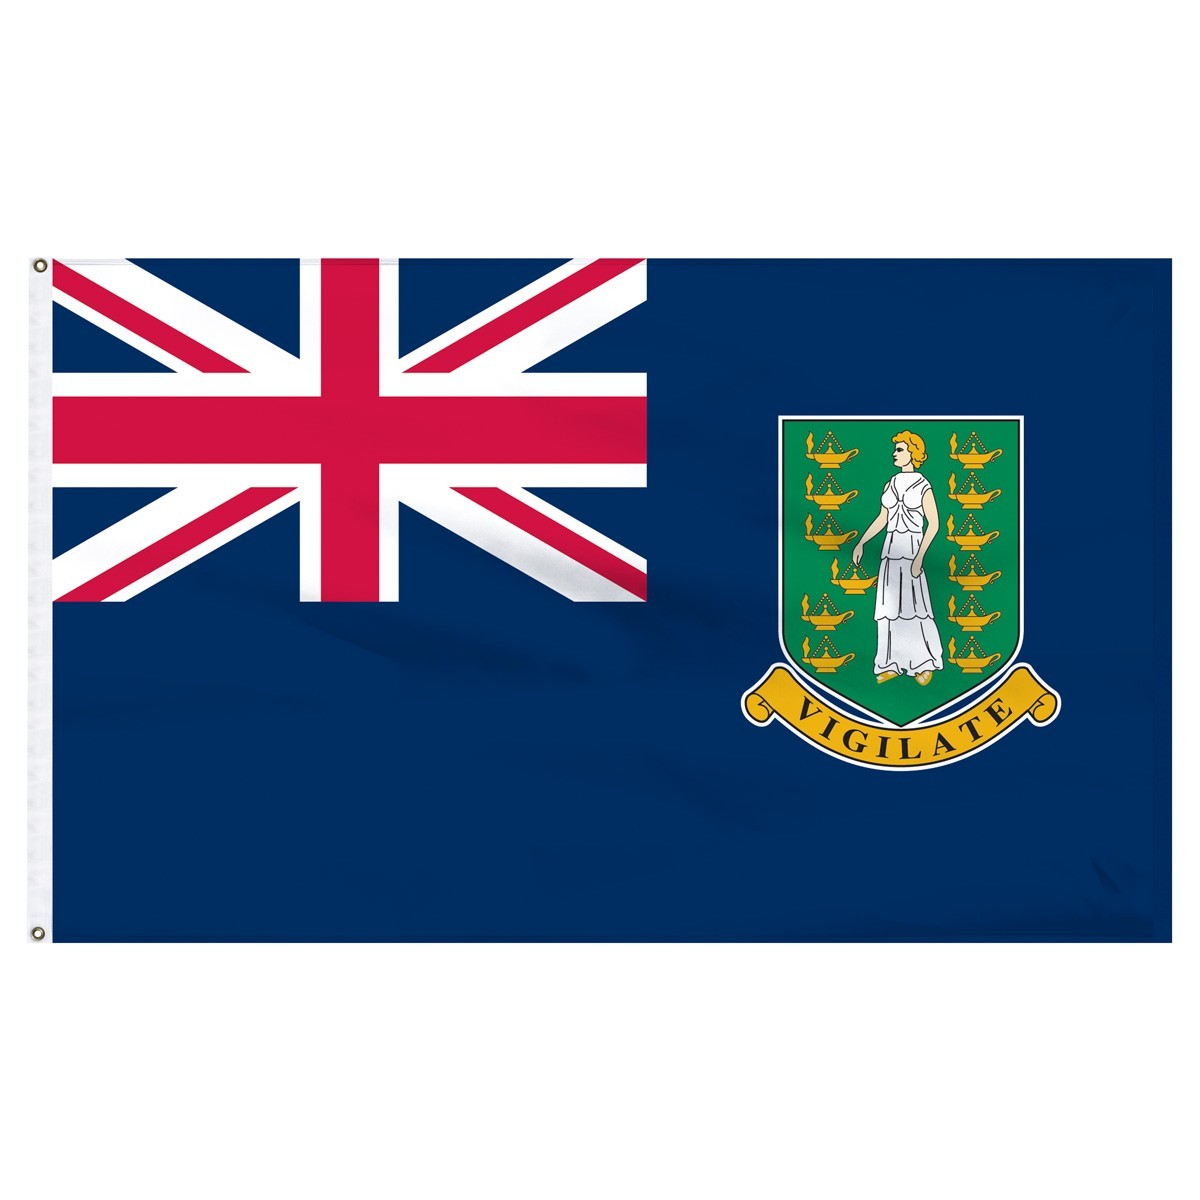 British Virgin Islands 3' x 5' Outdoor Nylon Flag